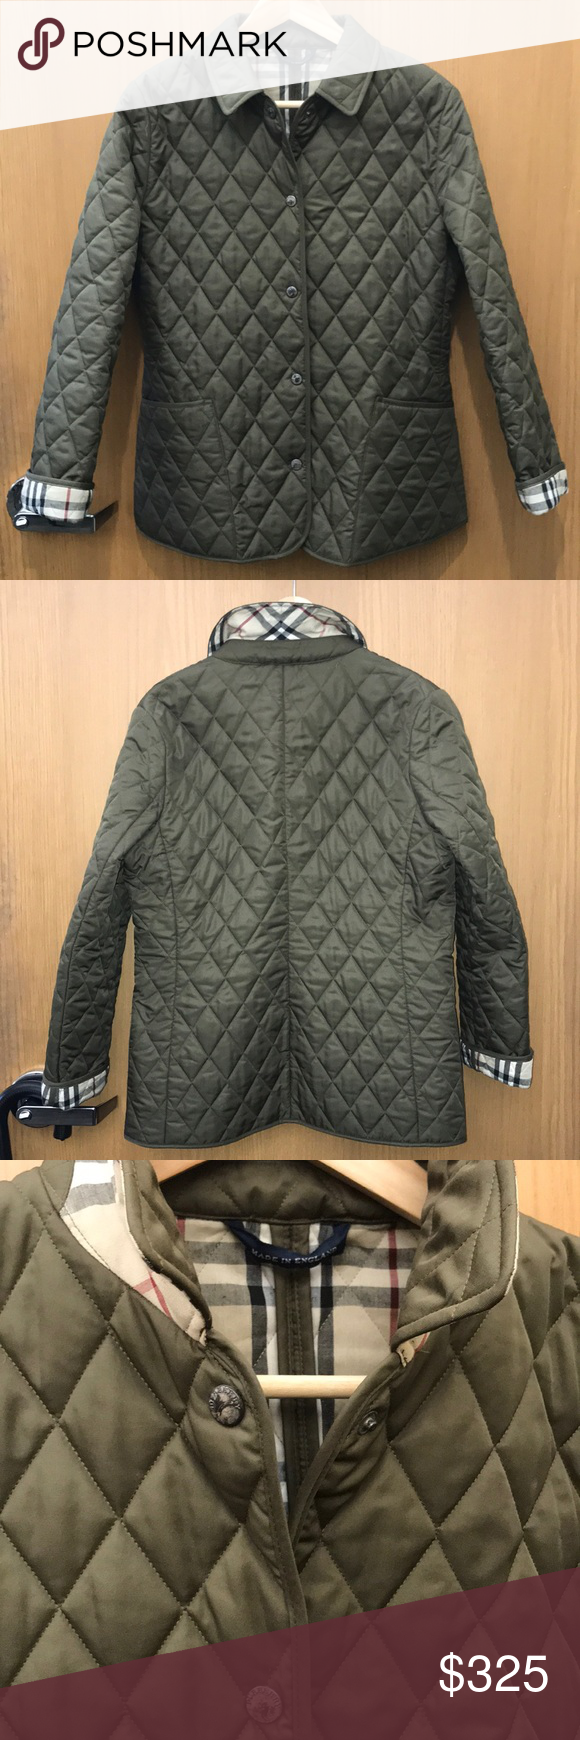 Burberry London Diamond Quilted Olive Jacket Szs Olive Jacket Burberry London Ladies Of London